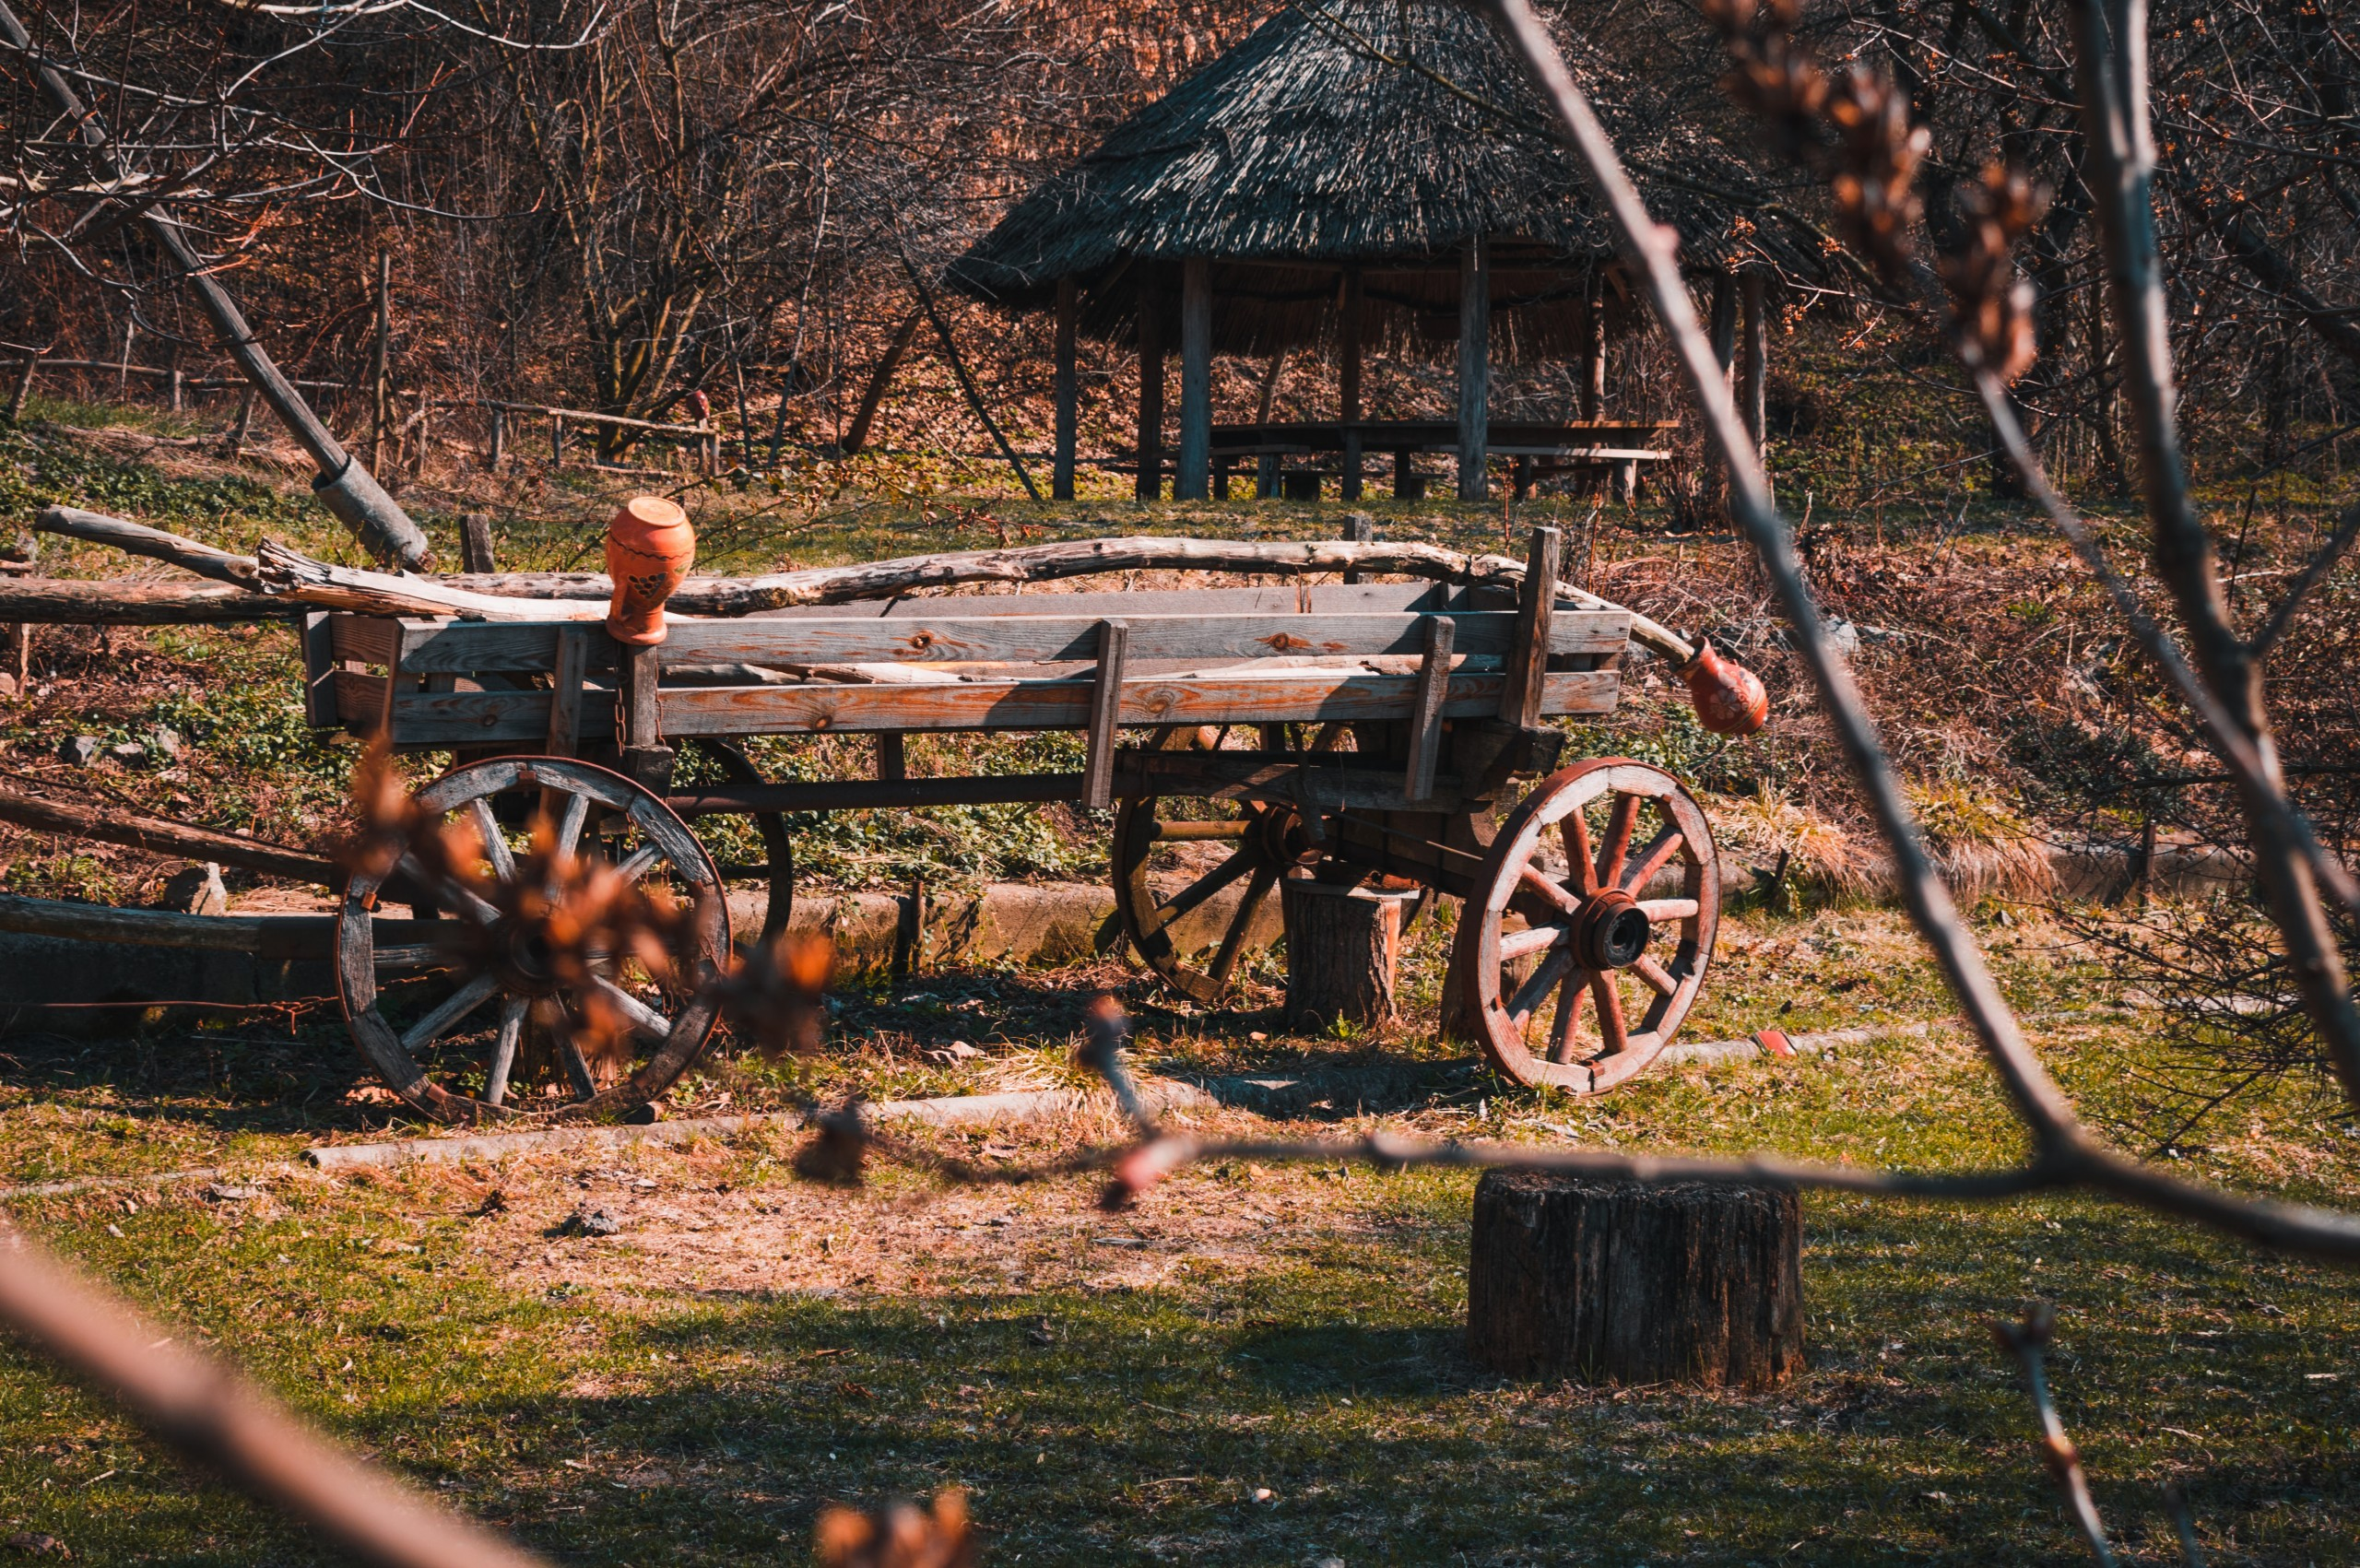 Wagon in wooded setting.